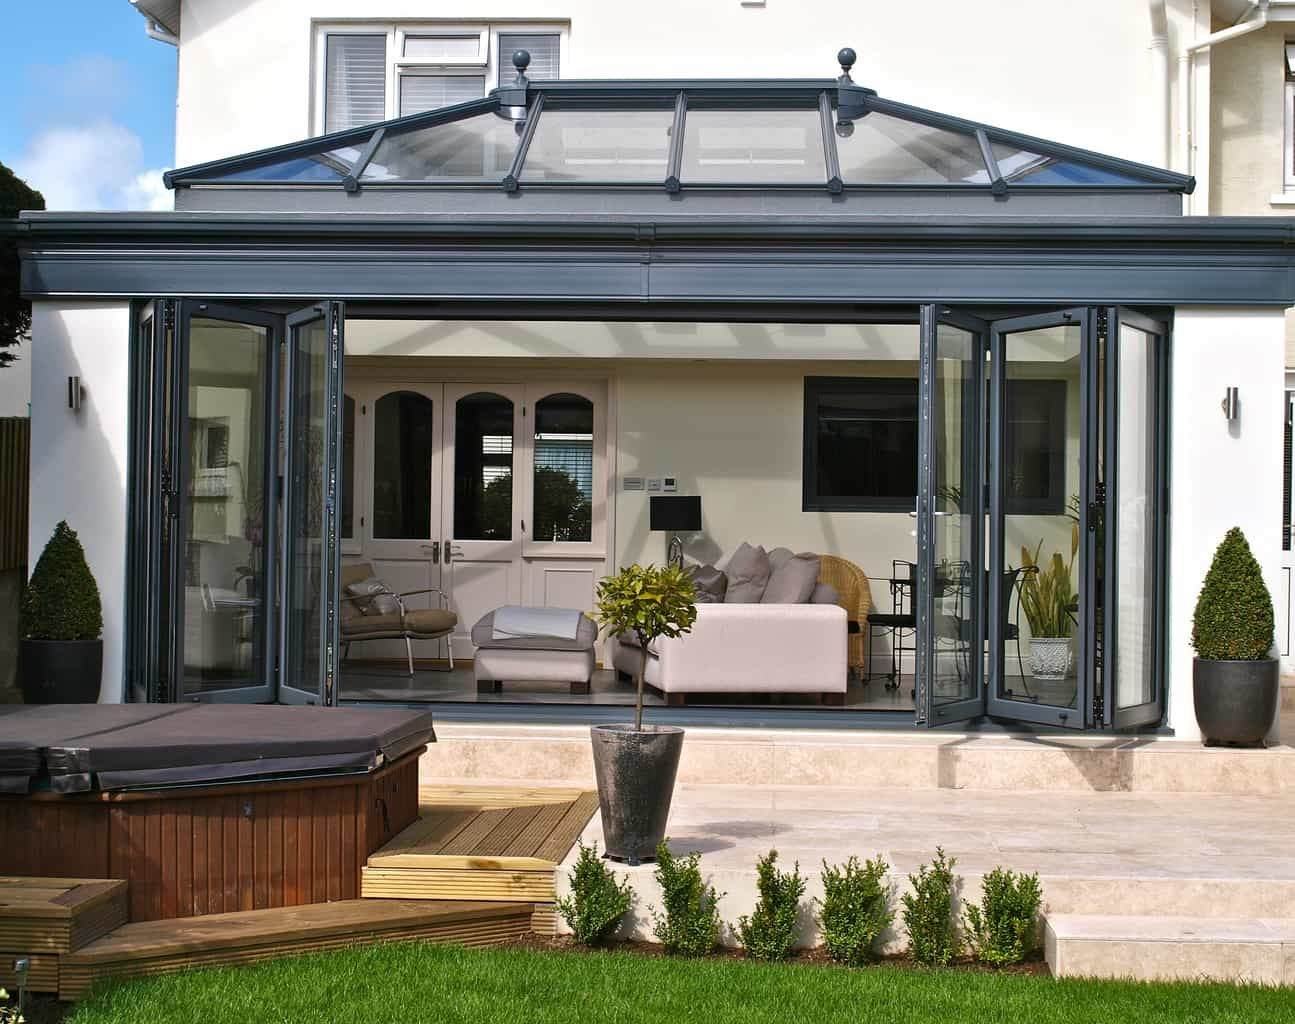 First of all, bifold doors are the ideal way to open up